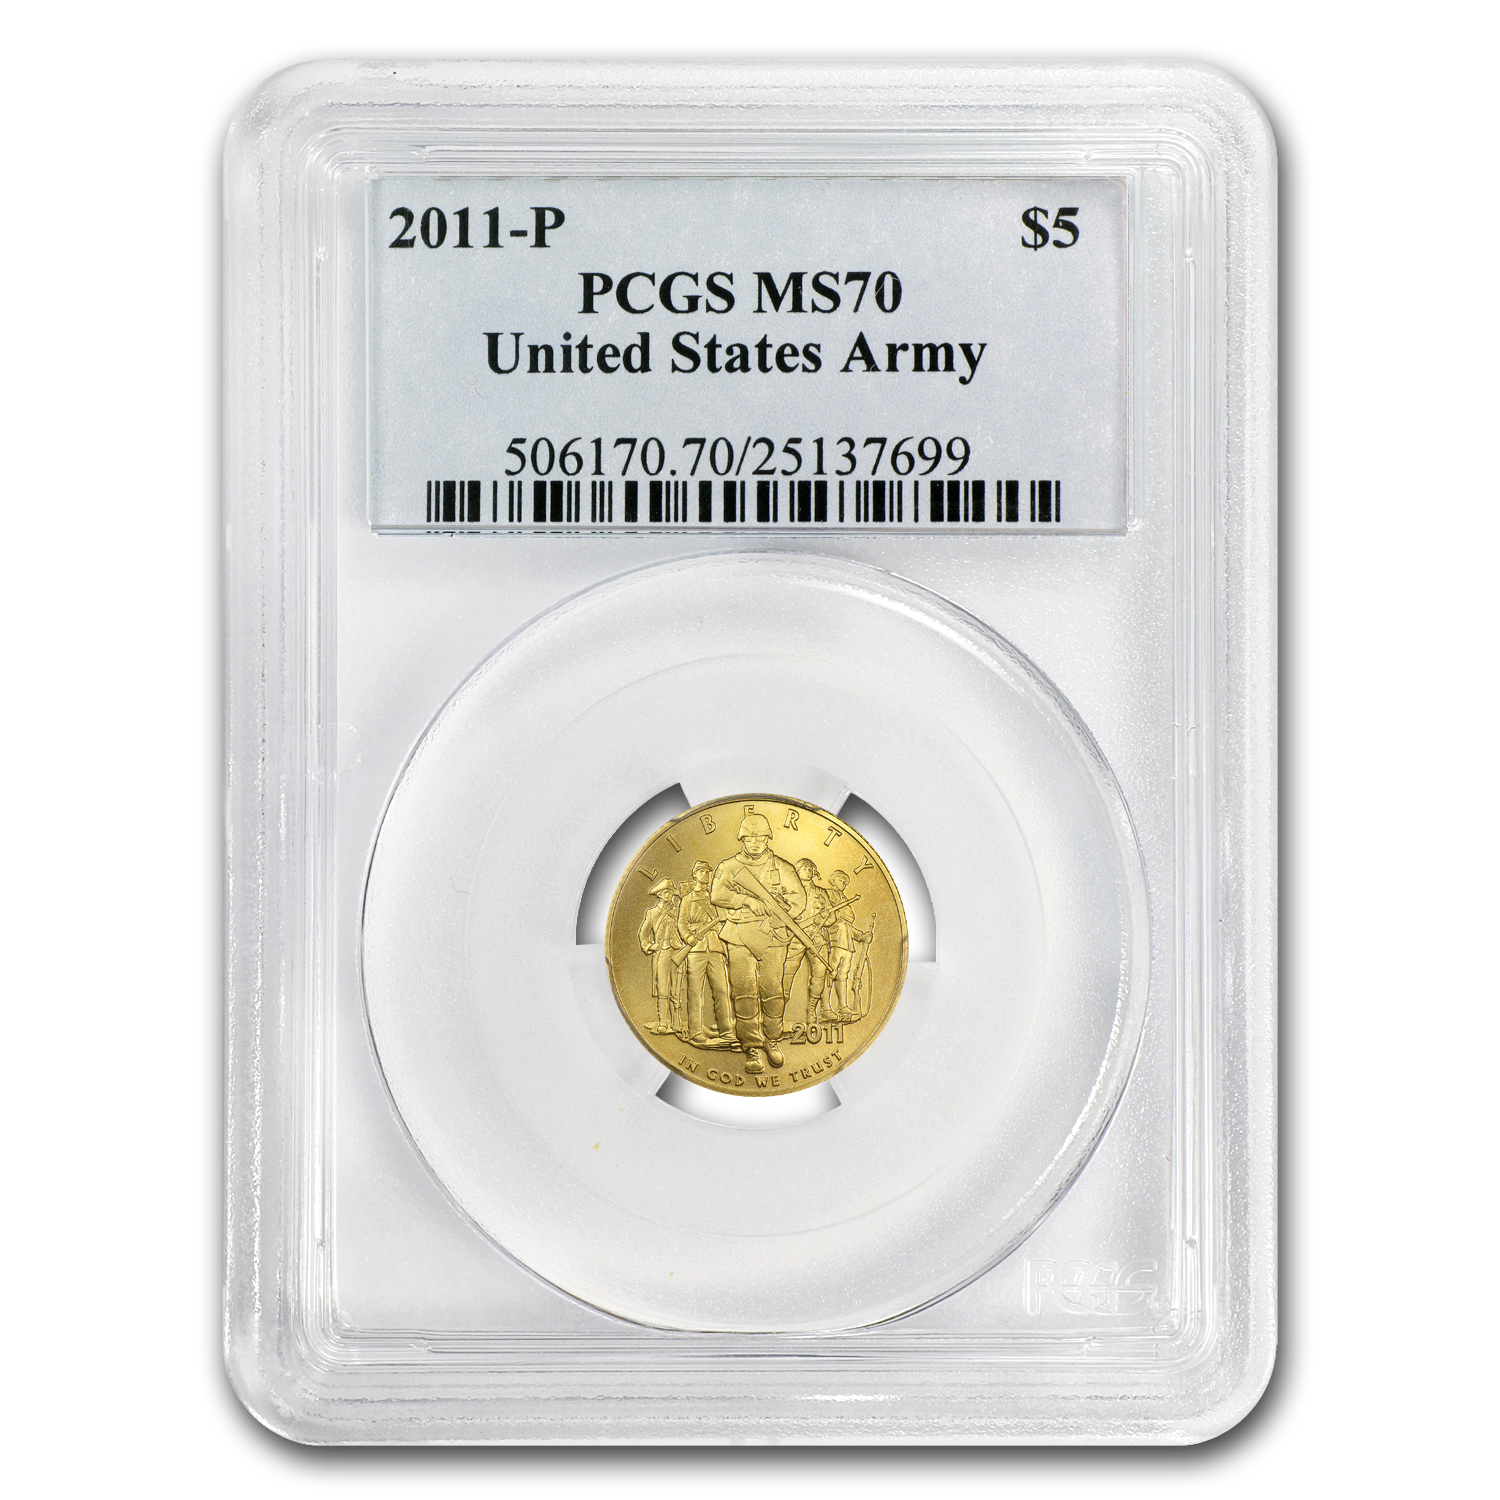 2011-P Army - $5 Gold Commemorative - MS-70 PCGS